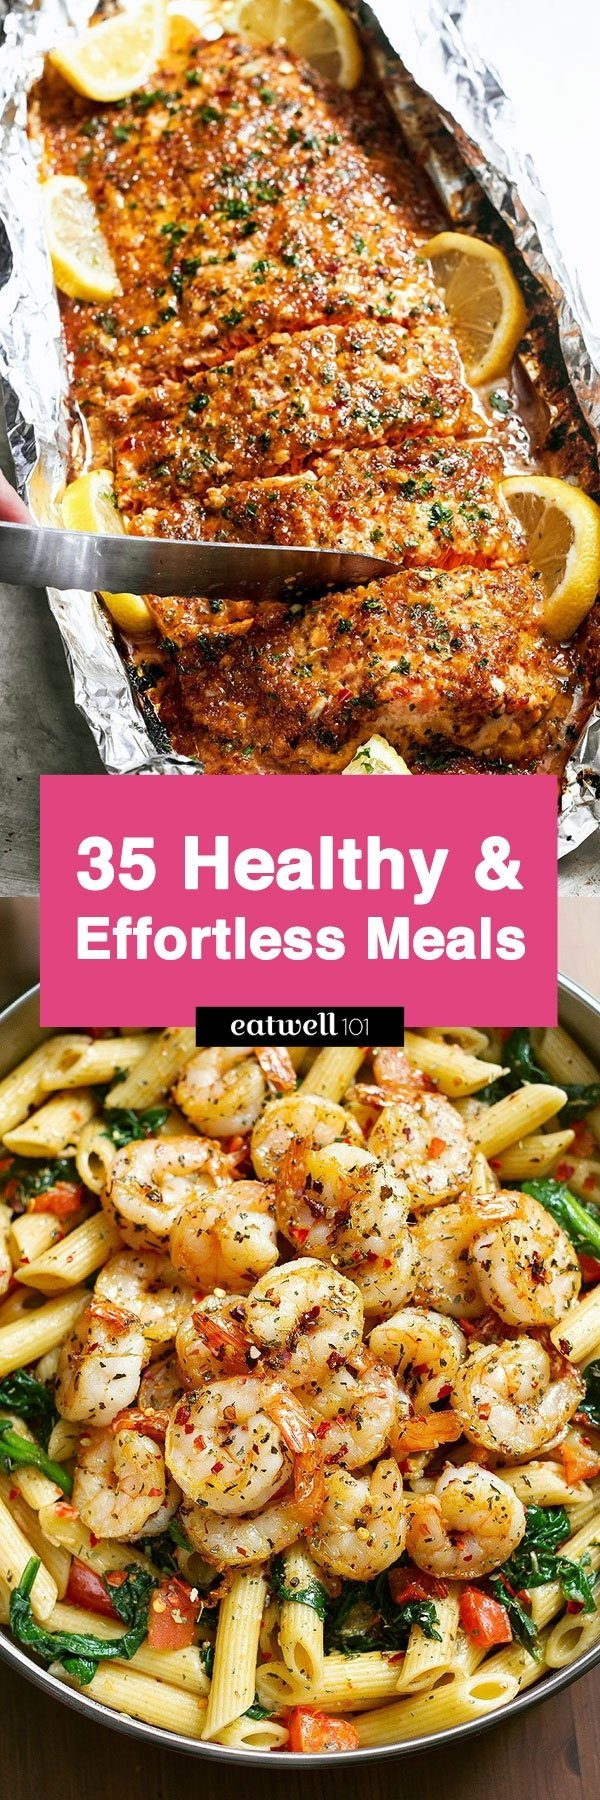 10 Spectacular Healthy Dinner Ideas For One 41 low effort and healthy dinner recipes eatwell101 38 2020